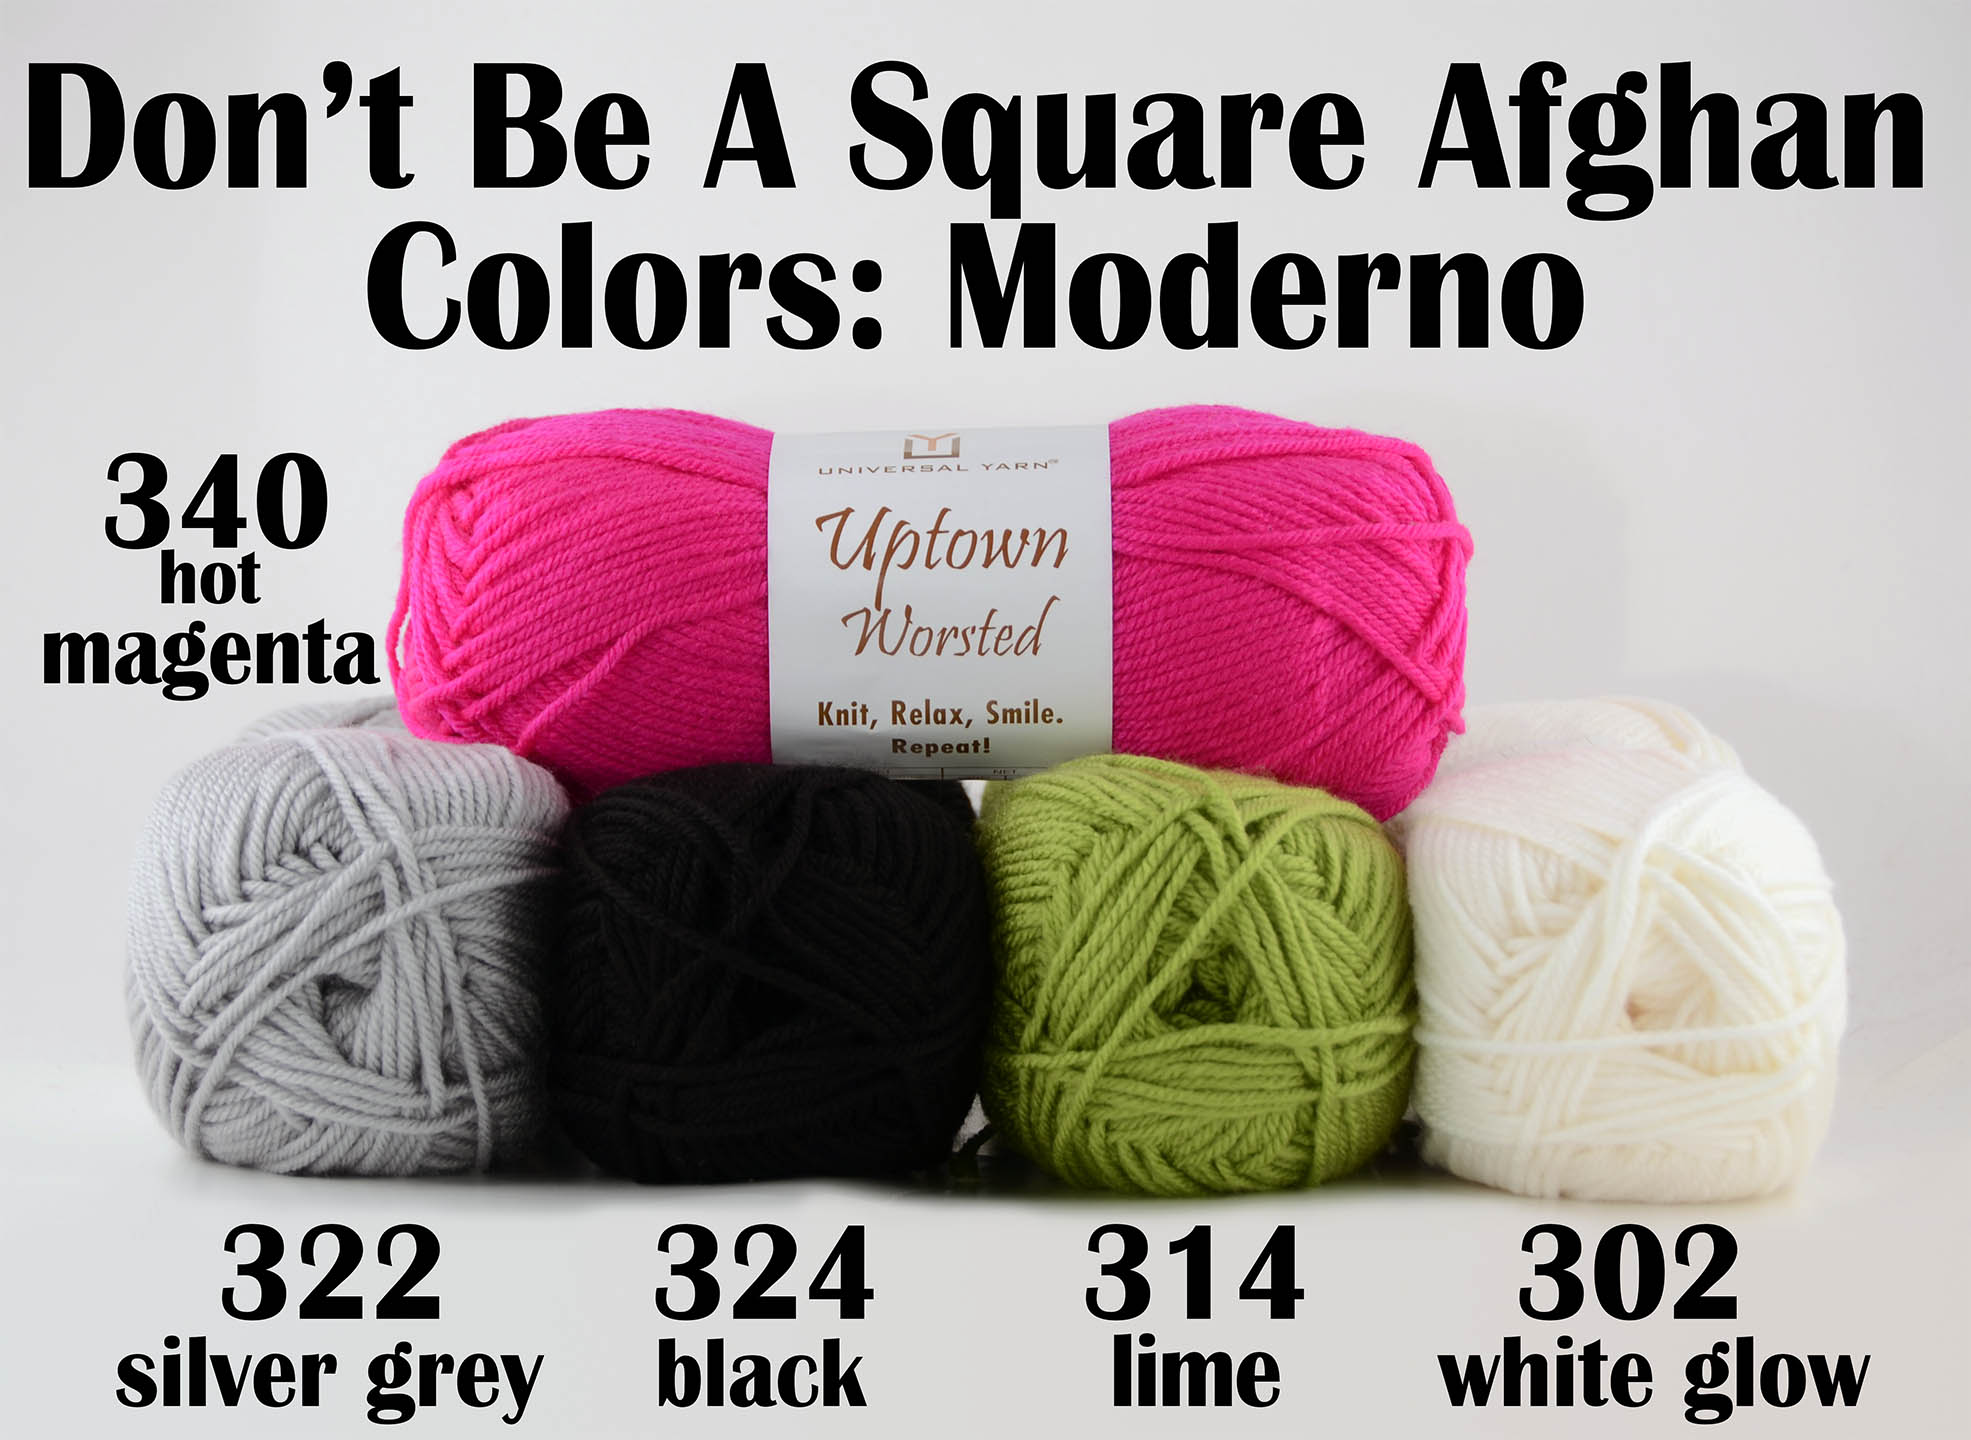 Afghan Knitalong - Moderno colors